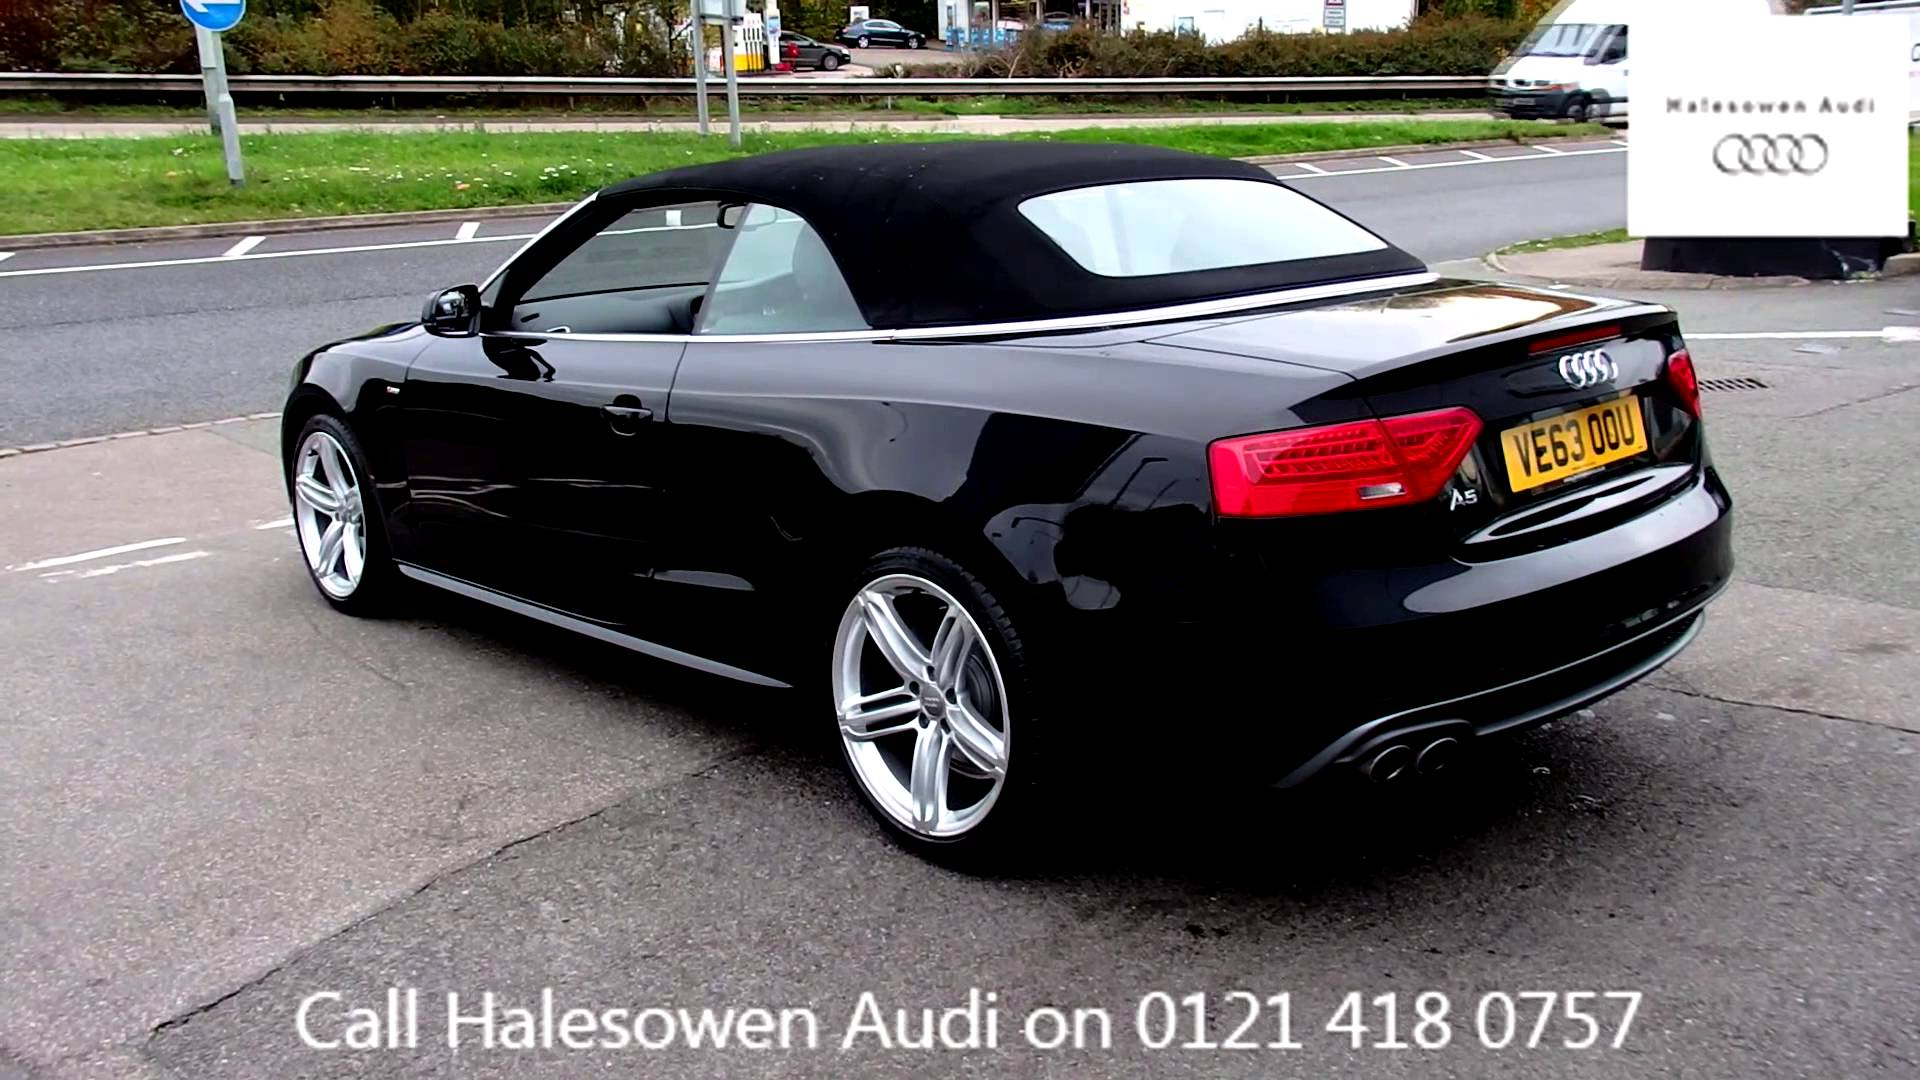 Audi A5 Black Convertible Wallpaper 1920x1080 2579